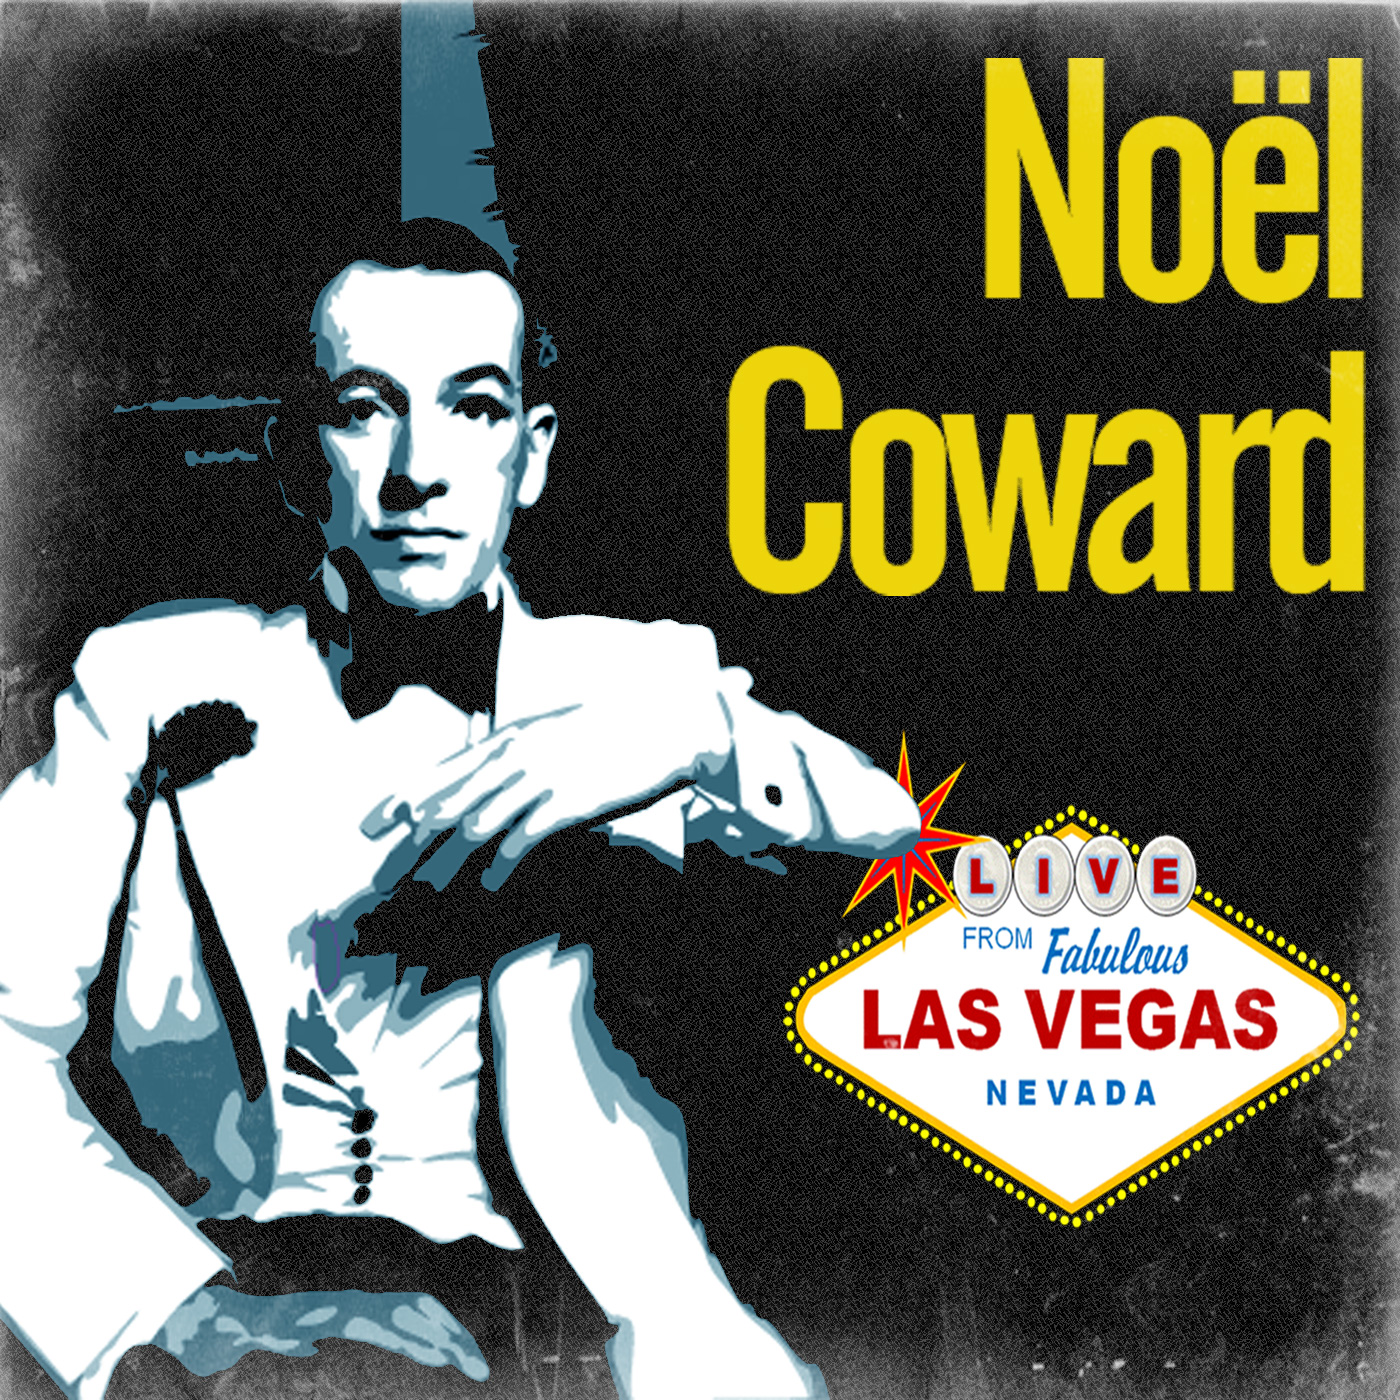 did noel coward and cole porter ever meet